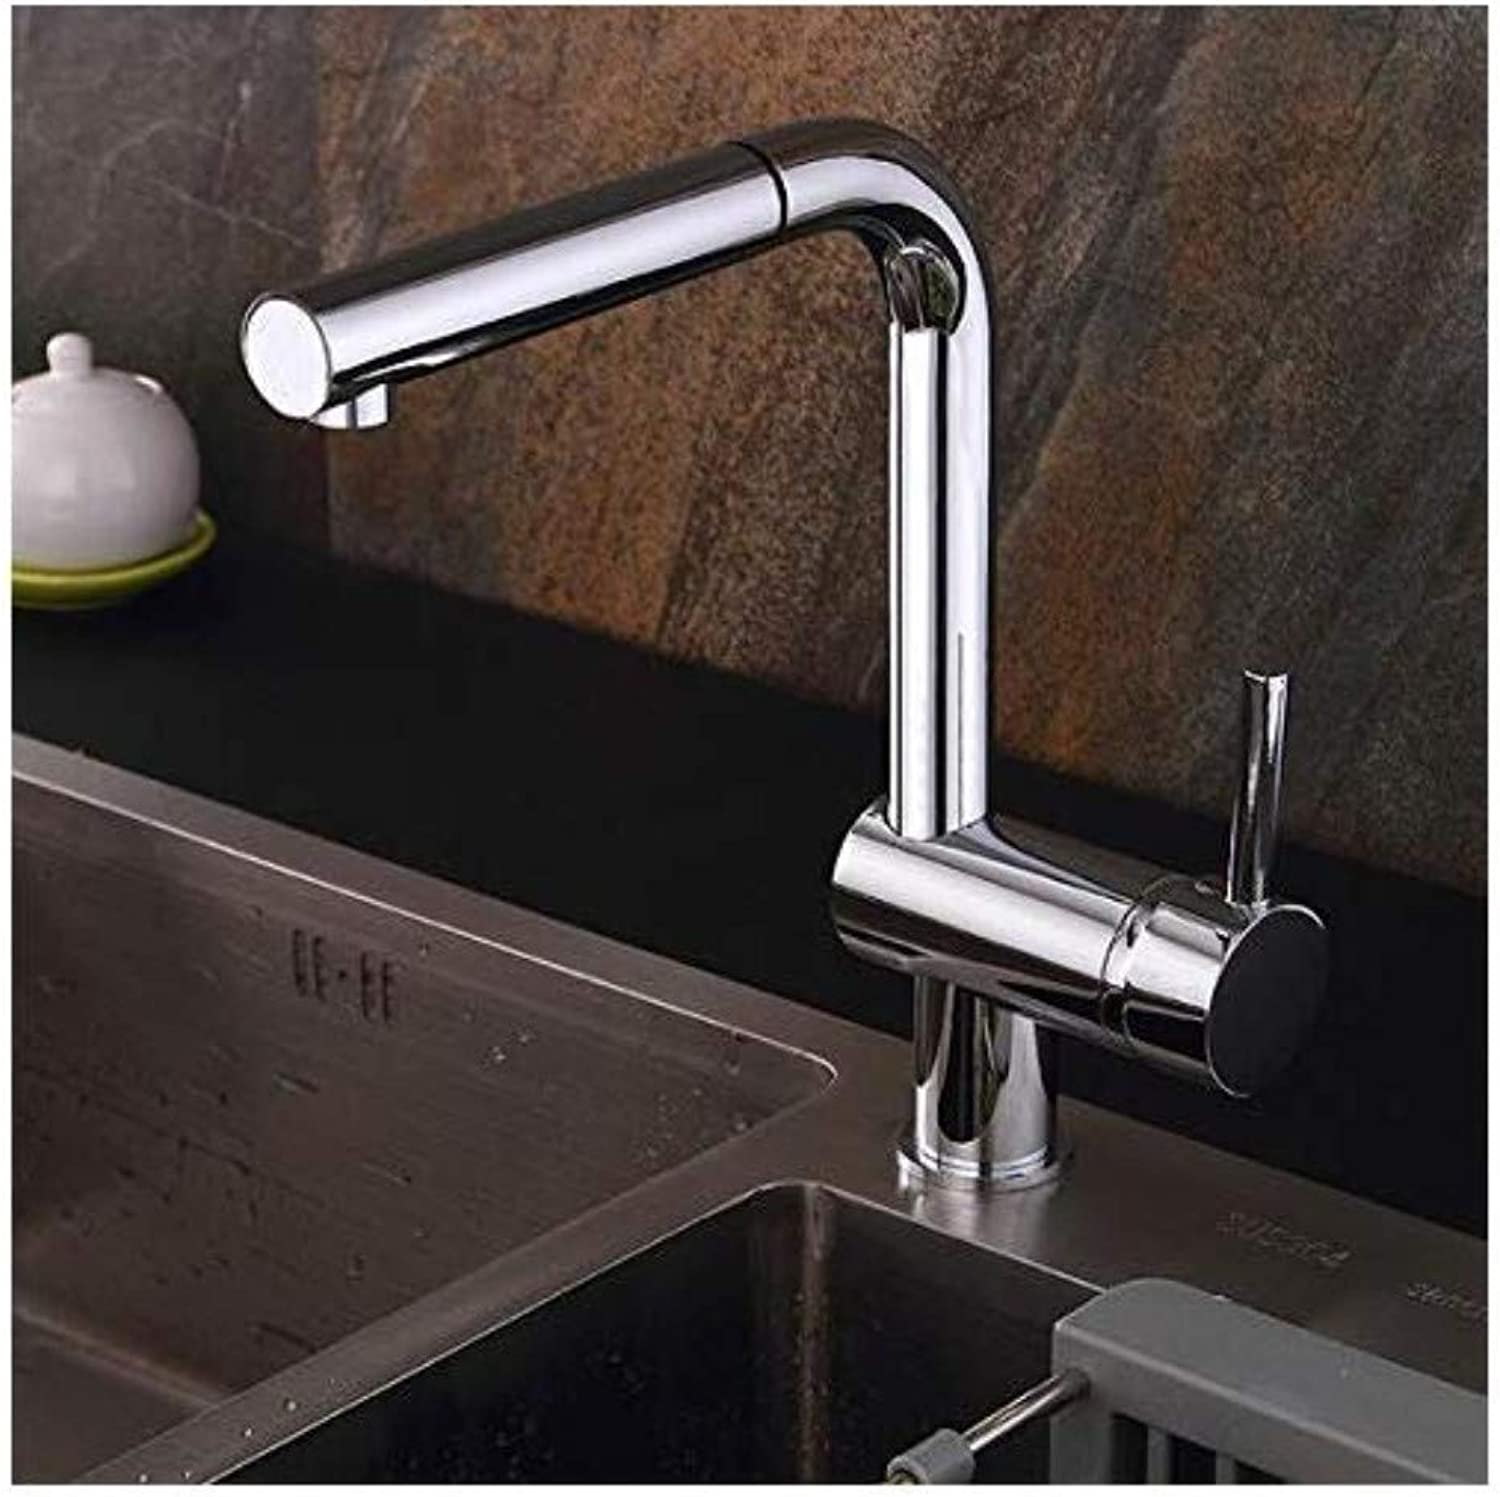 Brass Wall Faucet Chrome Brass Faucethole Mounted Cold and Hot Mixer redatable Faucet